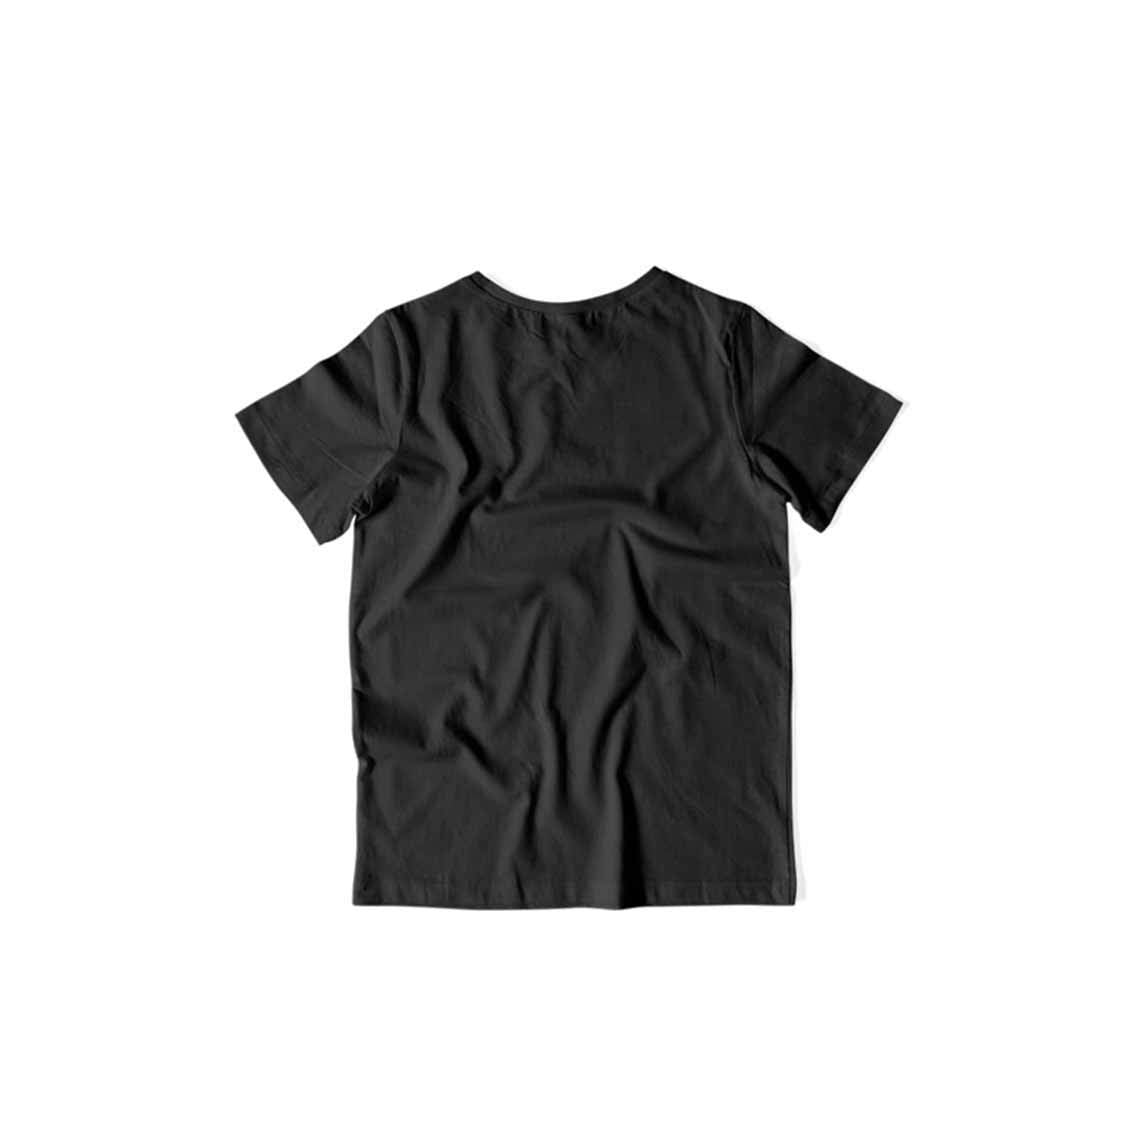 Kids's Basics - Black Half Sleeves Round Neck T-shirt